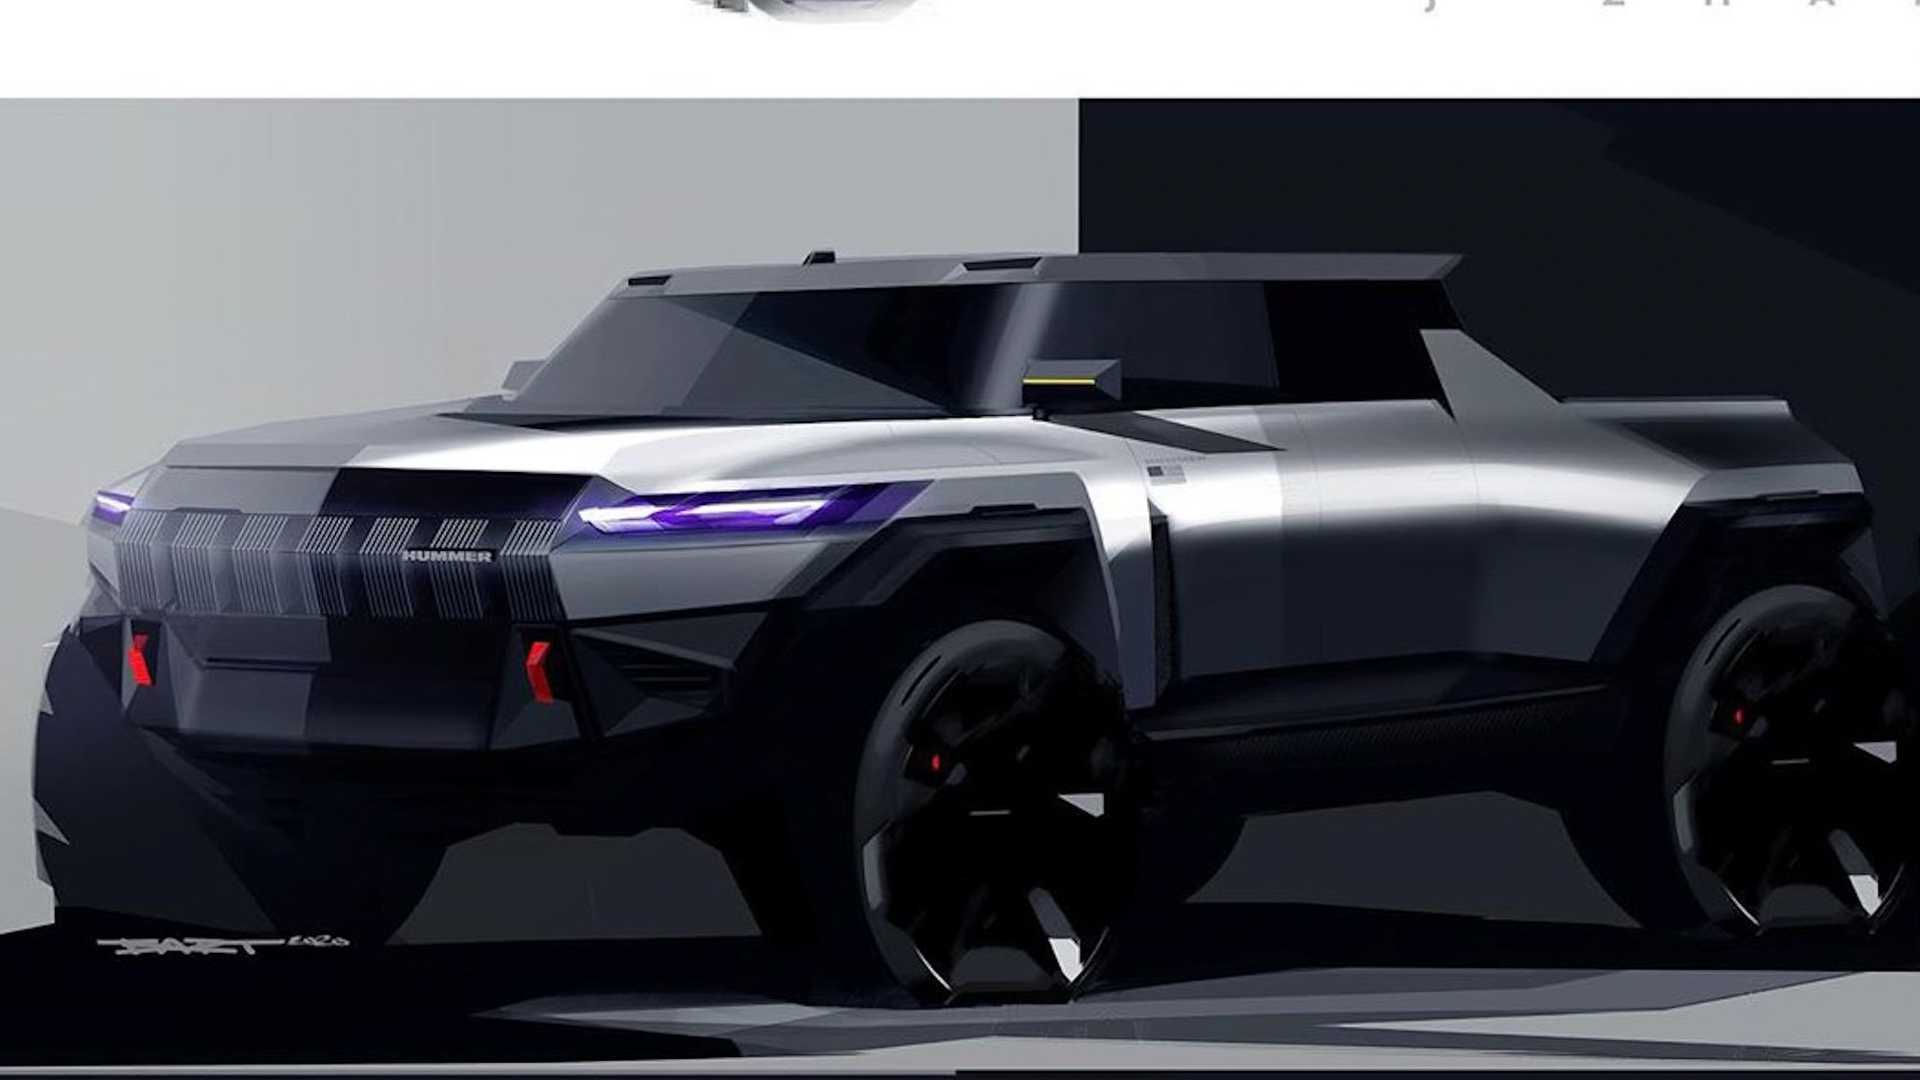 2022-gmc-hummer-ev-sketches-2